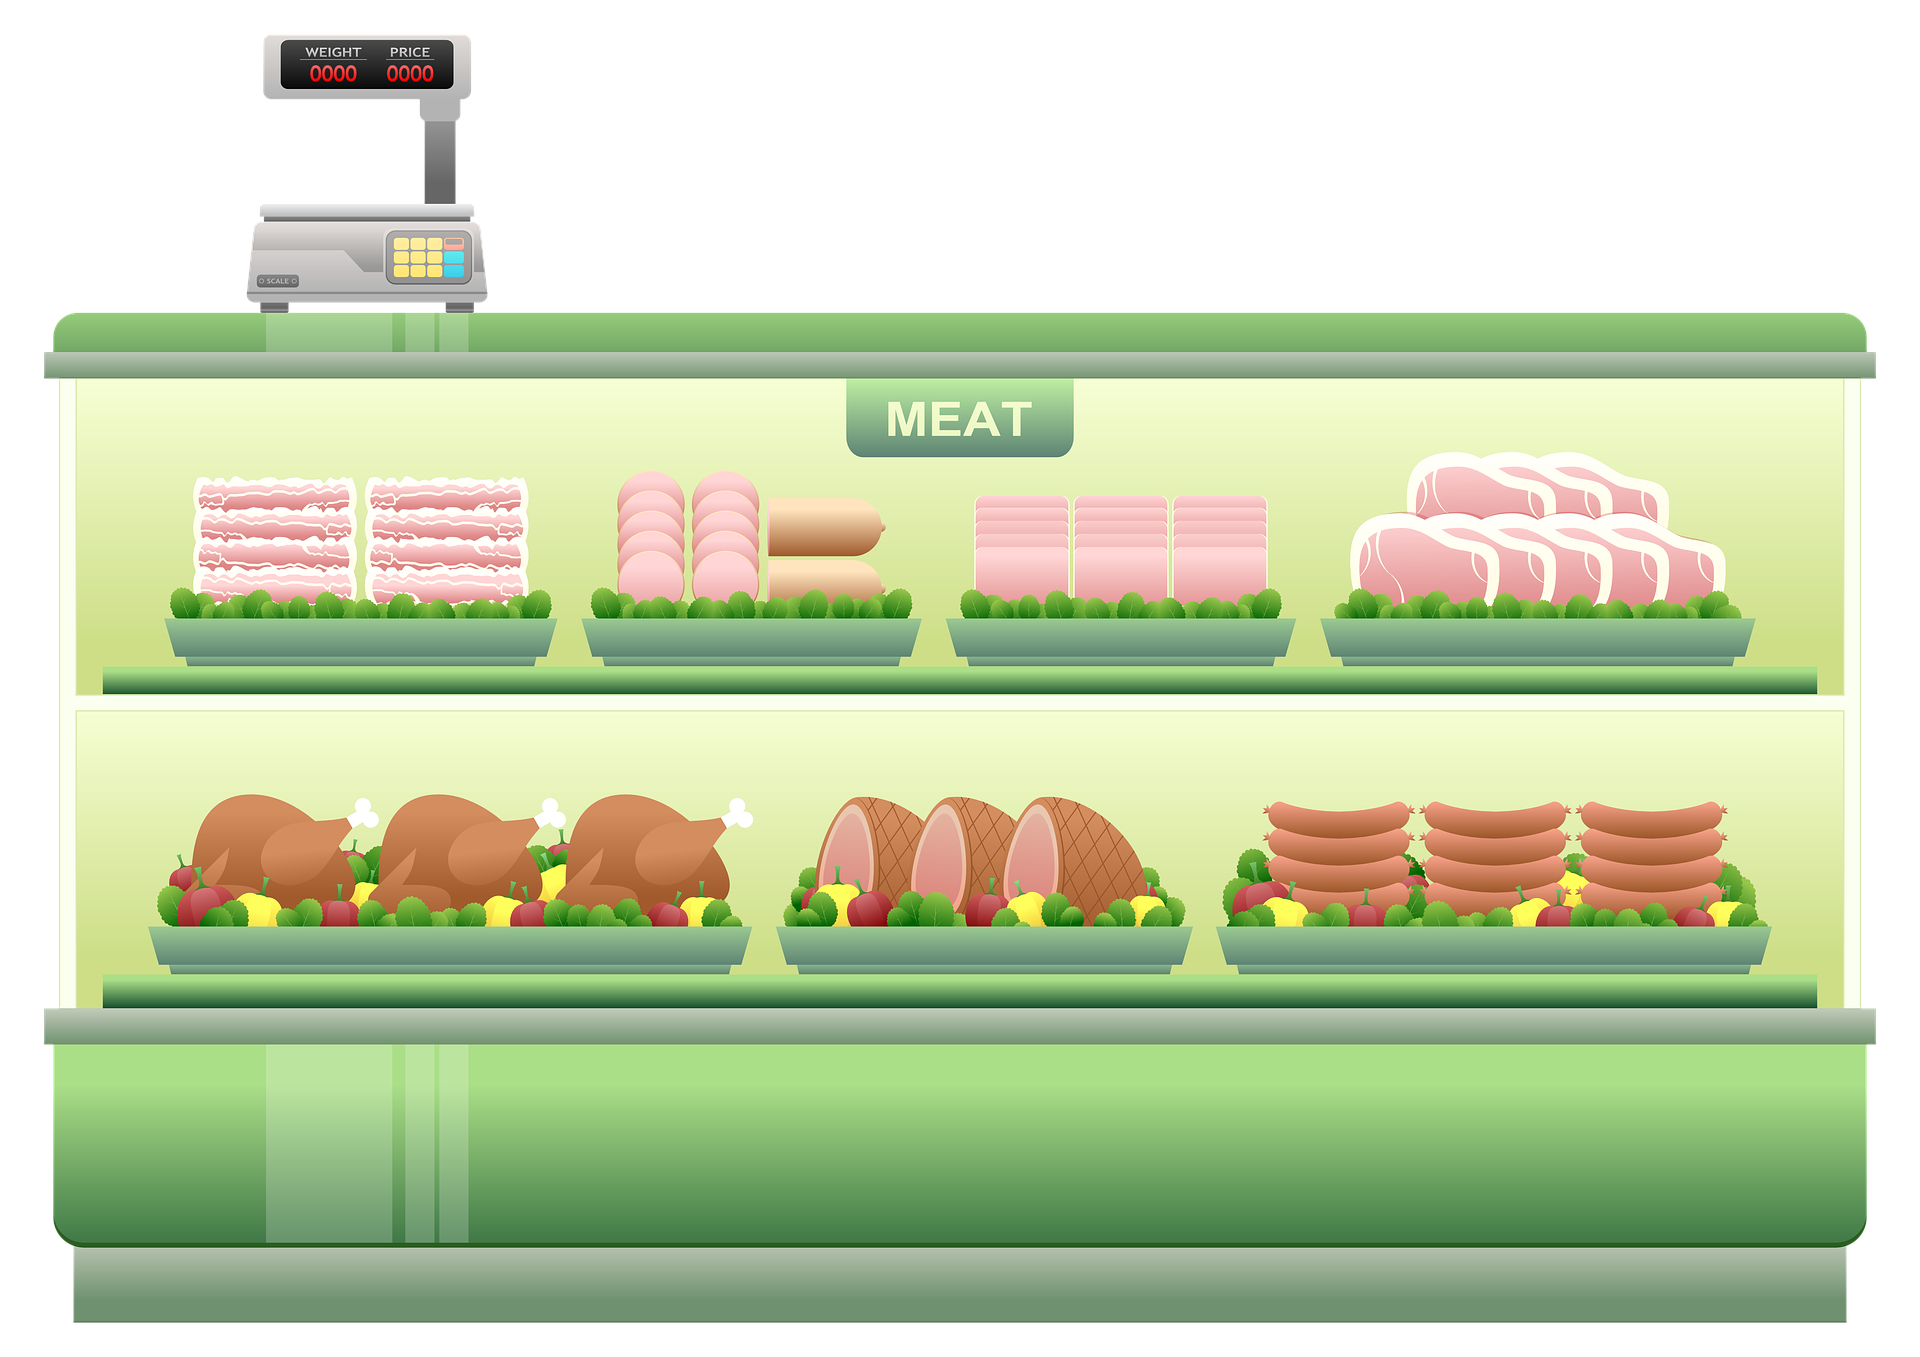 Meat in China